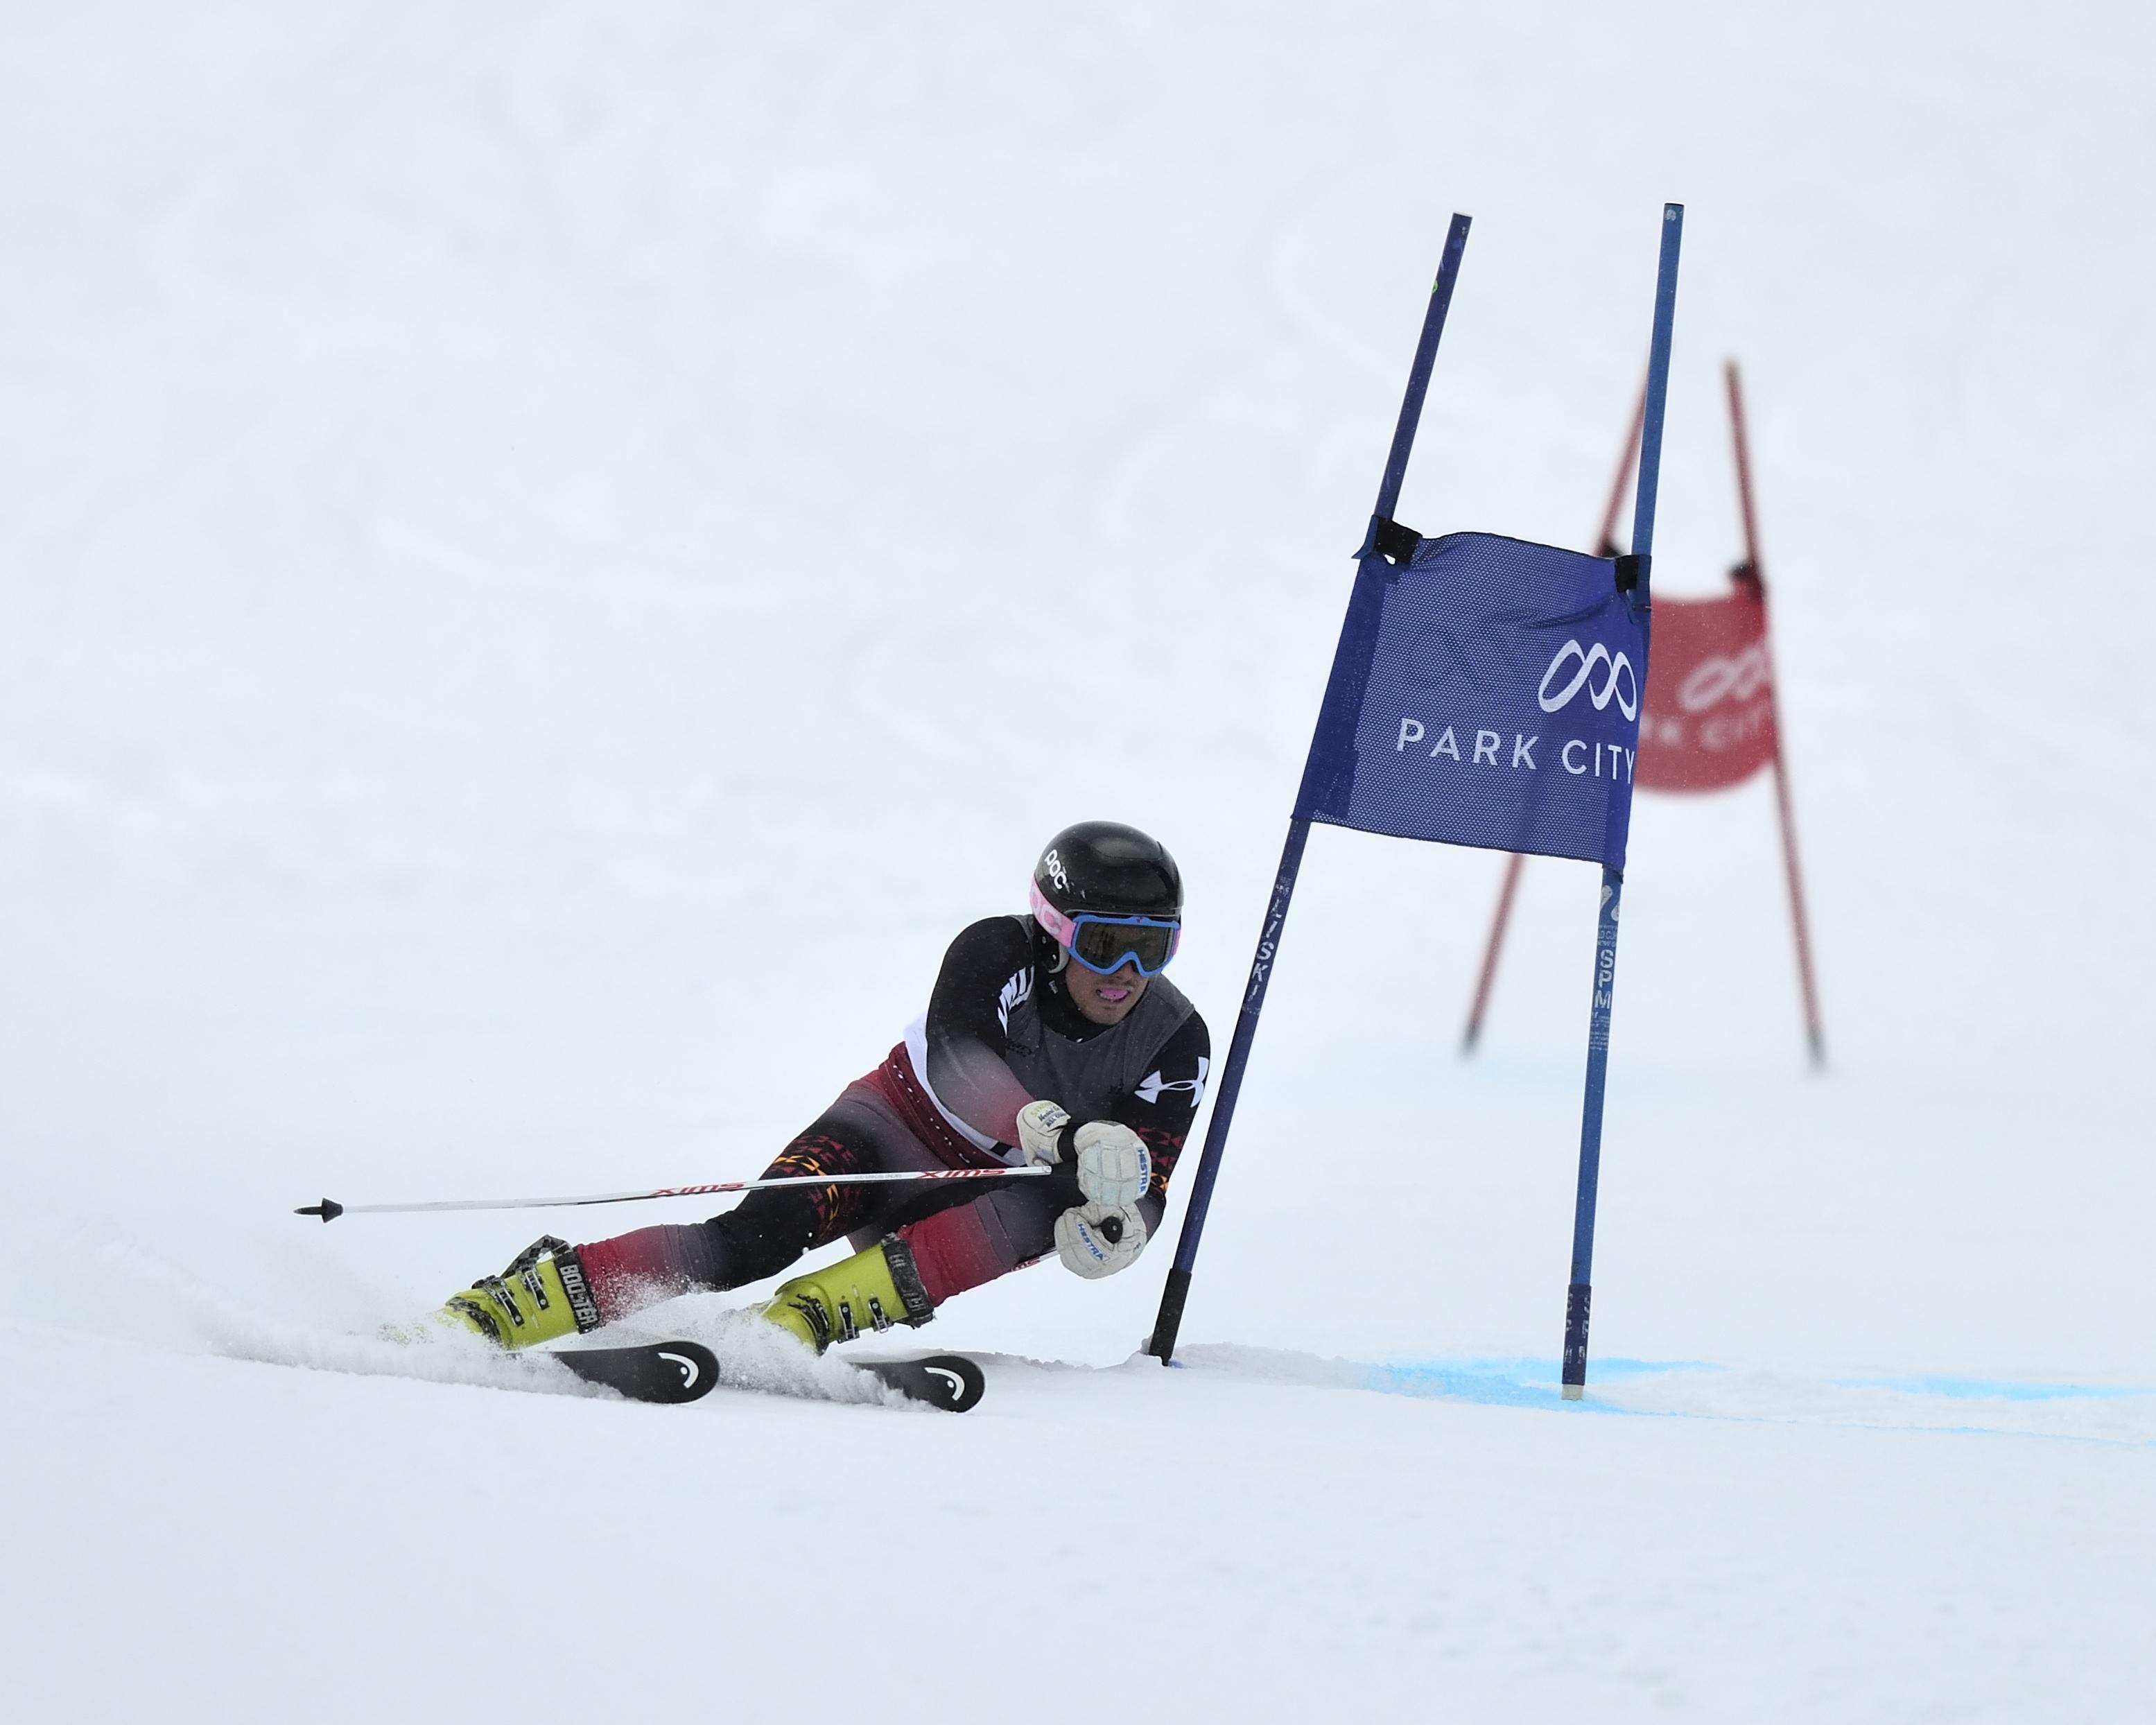 University of Utah men's ski team competes in the Giant Slalom at Park City, Utah (Park City Mountain Resort) on Wednesday, January 6, 2015